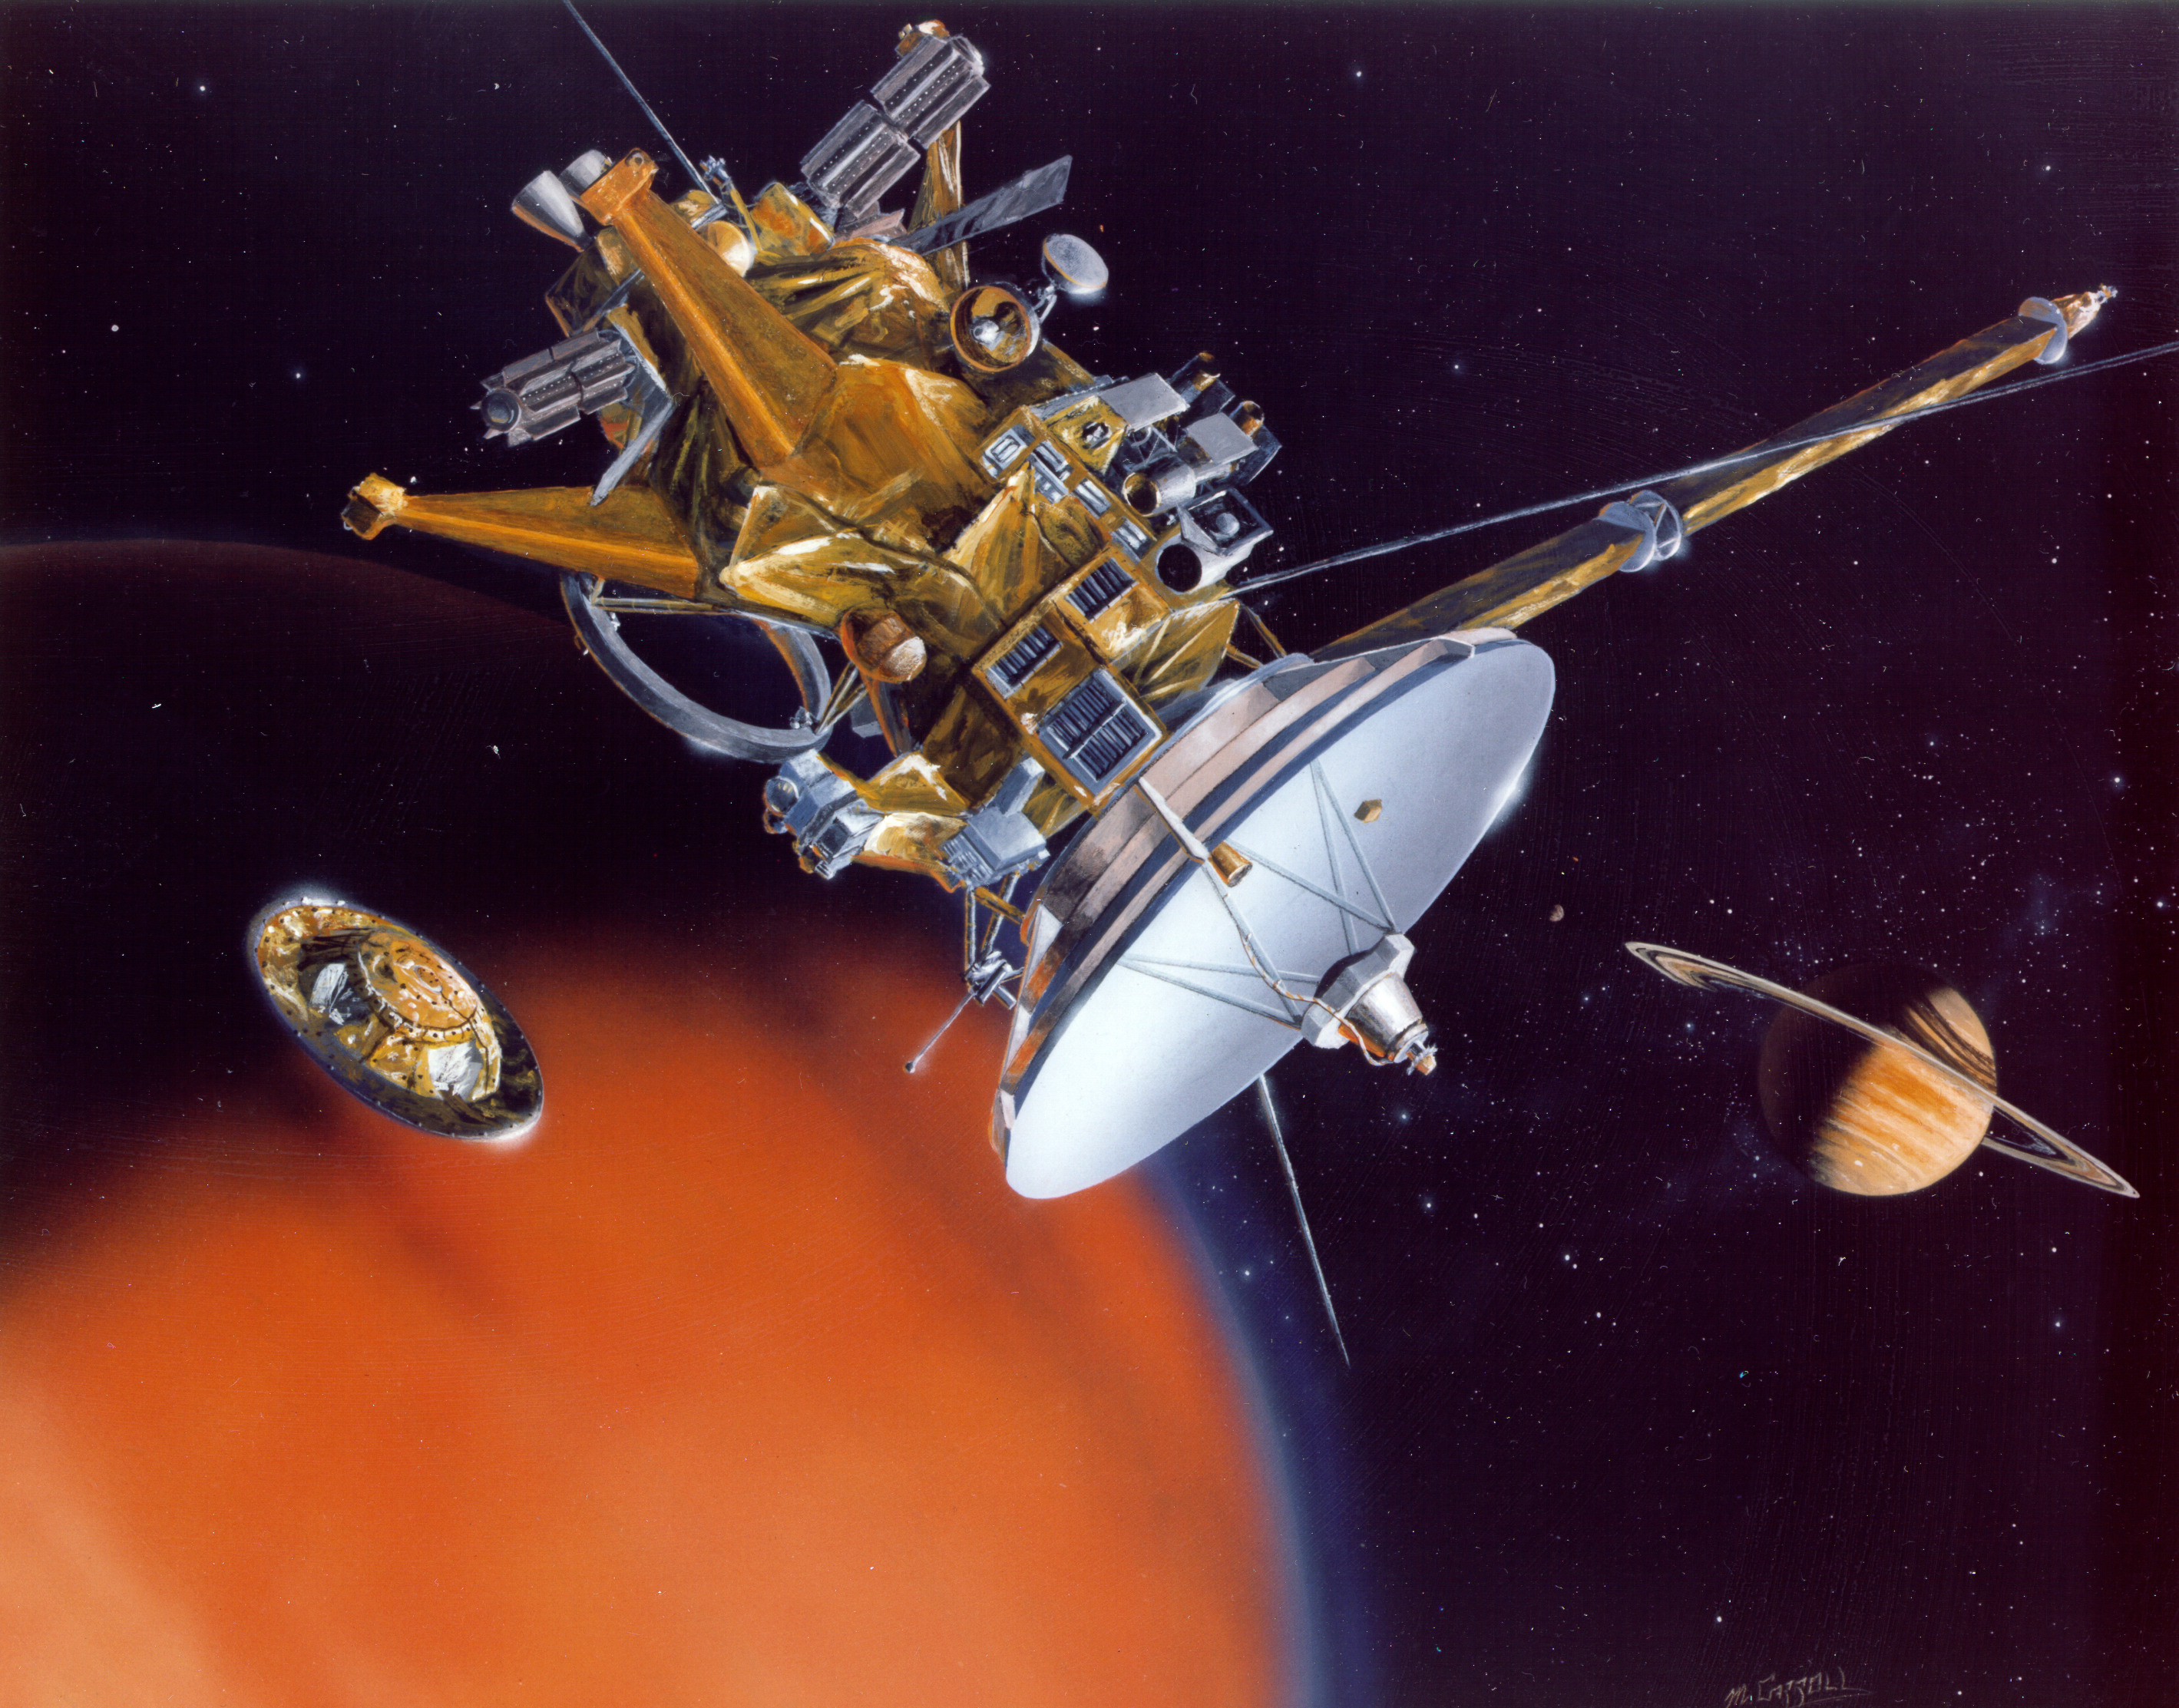 Artist's concept of Cassini releasing the Huygens probe